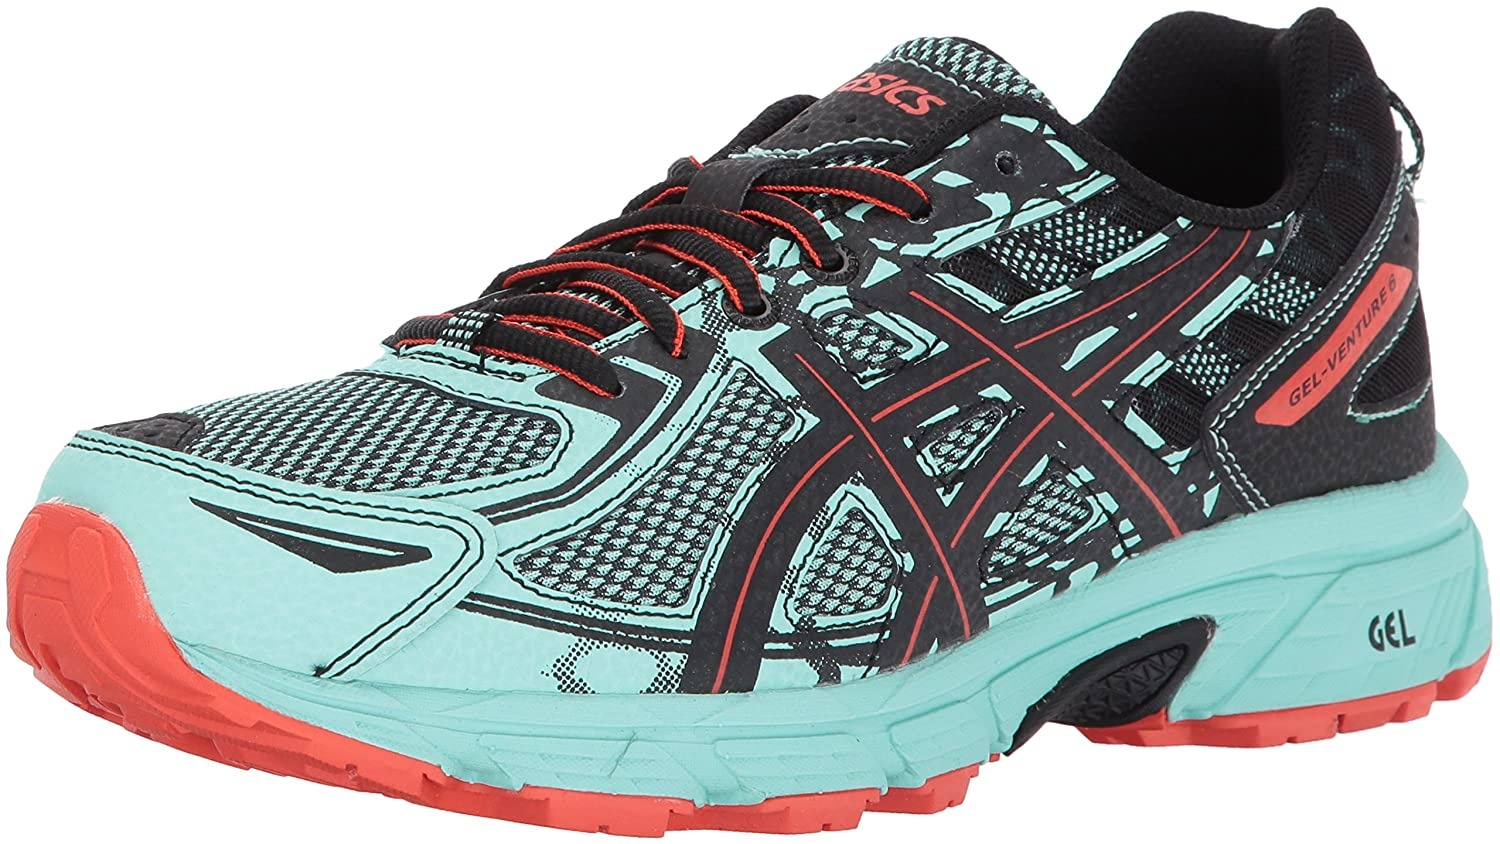 ASICS Women's Gel-Venture 6 Running-Shoes B01MU04JOP 10.5 B(M) US|Ice Green/Black/Cherry Tomato